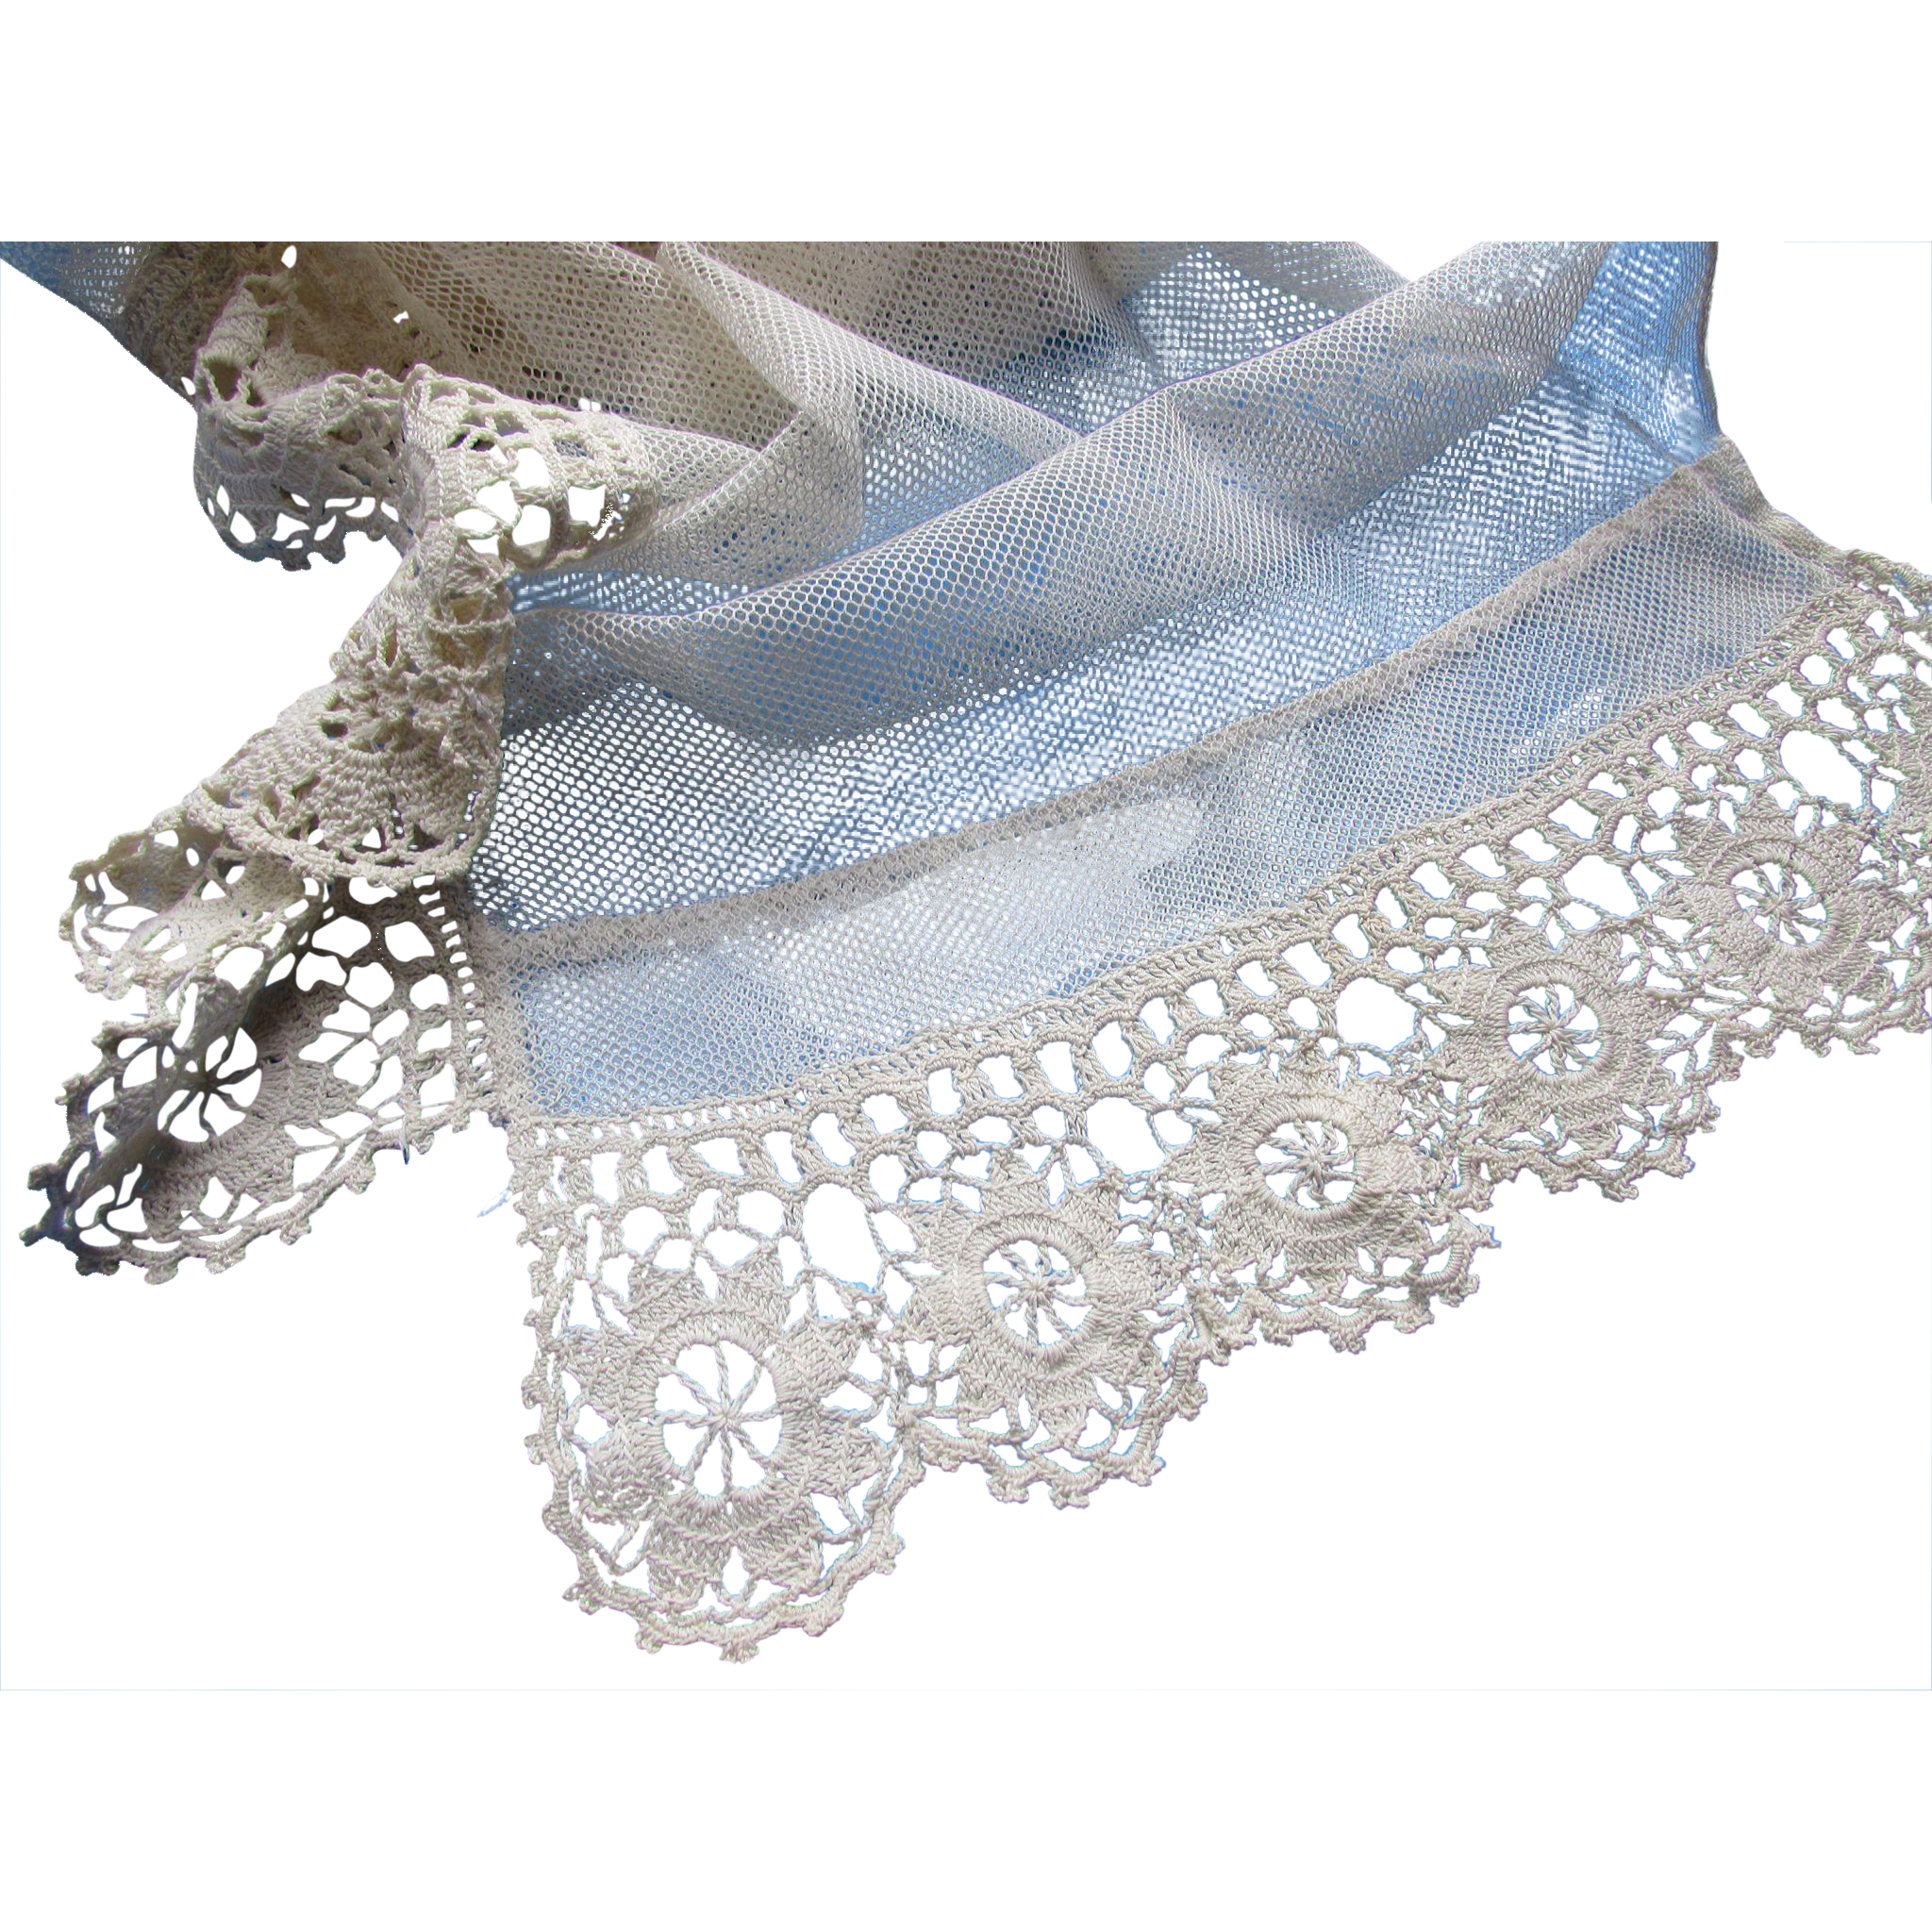 Romantic Style Vintage Net and Lace Valance or Runner in Cream Tone